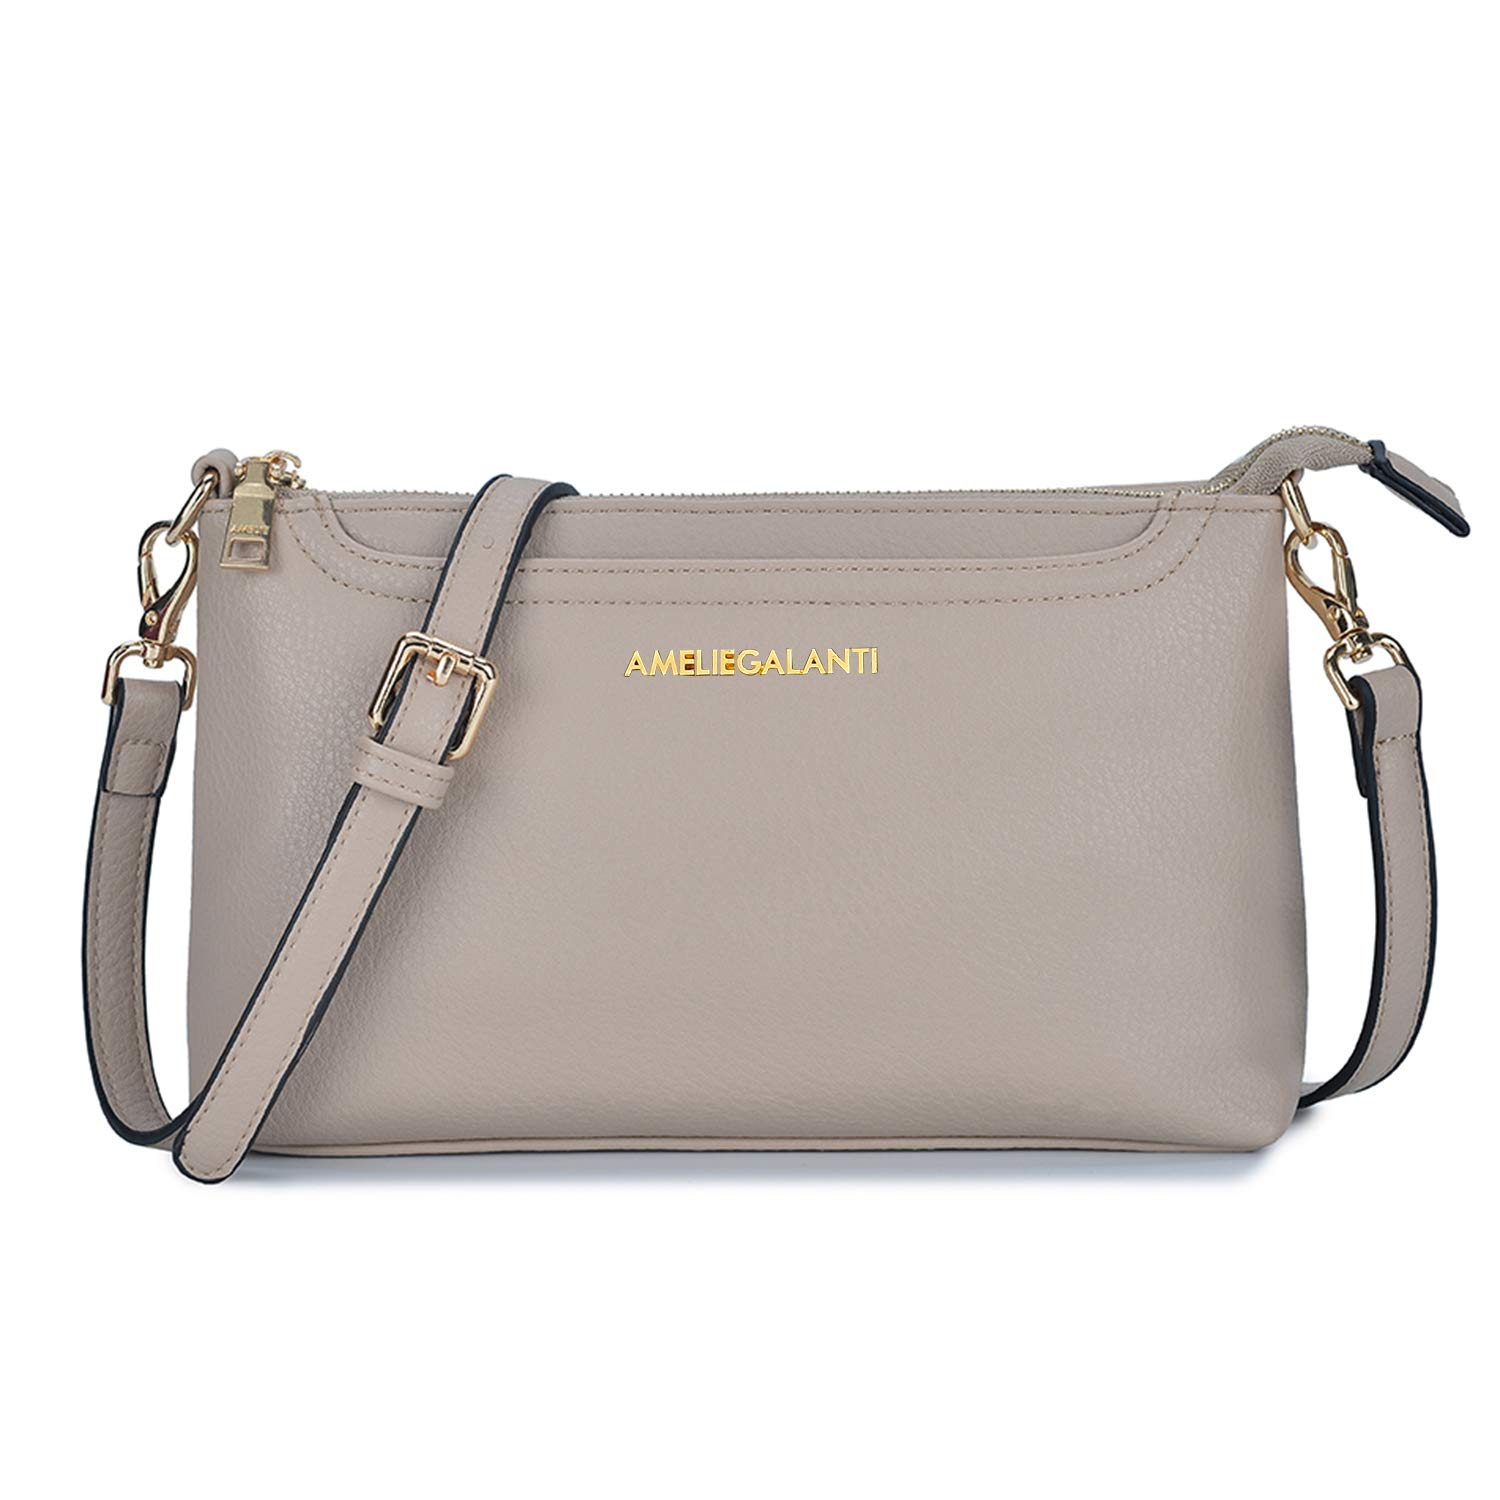 Crossbody Bags for Women, Lightweight Purses and Handbags PU Leather Small Shoulder Bag Satchel with Adjustable Strap by AMELIE GALANTI